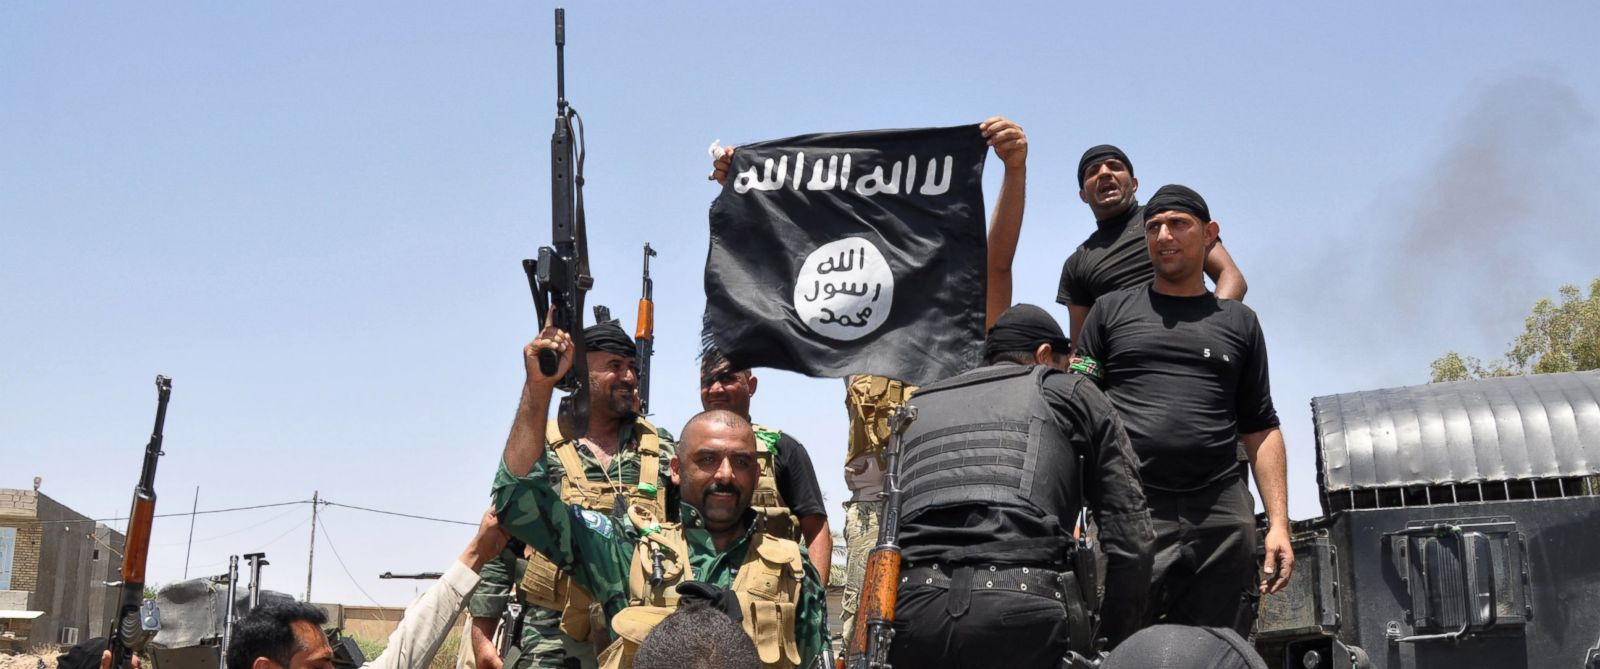 PHOTO: Iraqi security forces hold up a flag of the the jihadist group ISIS that they captured during an operation to regain control of Dallah Abbas, 35 miles outside of Baghdad, Iraq on Jun 28, 2014.